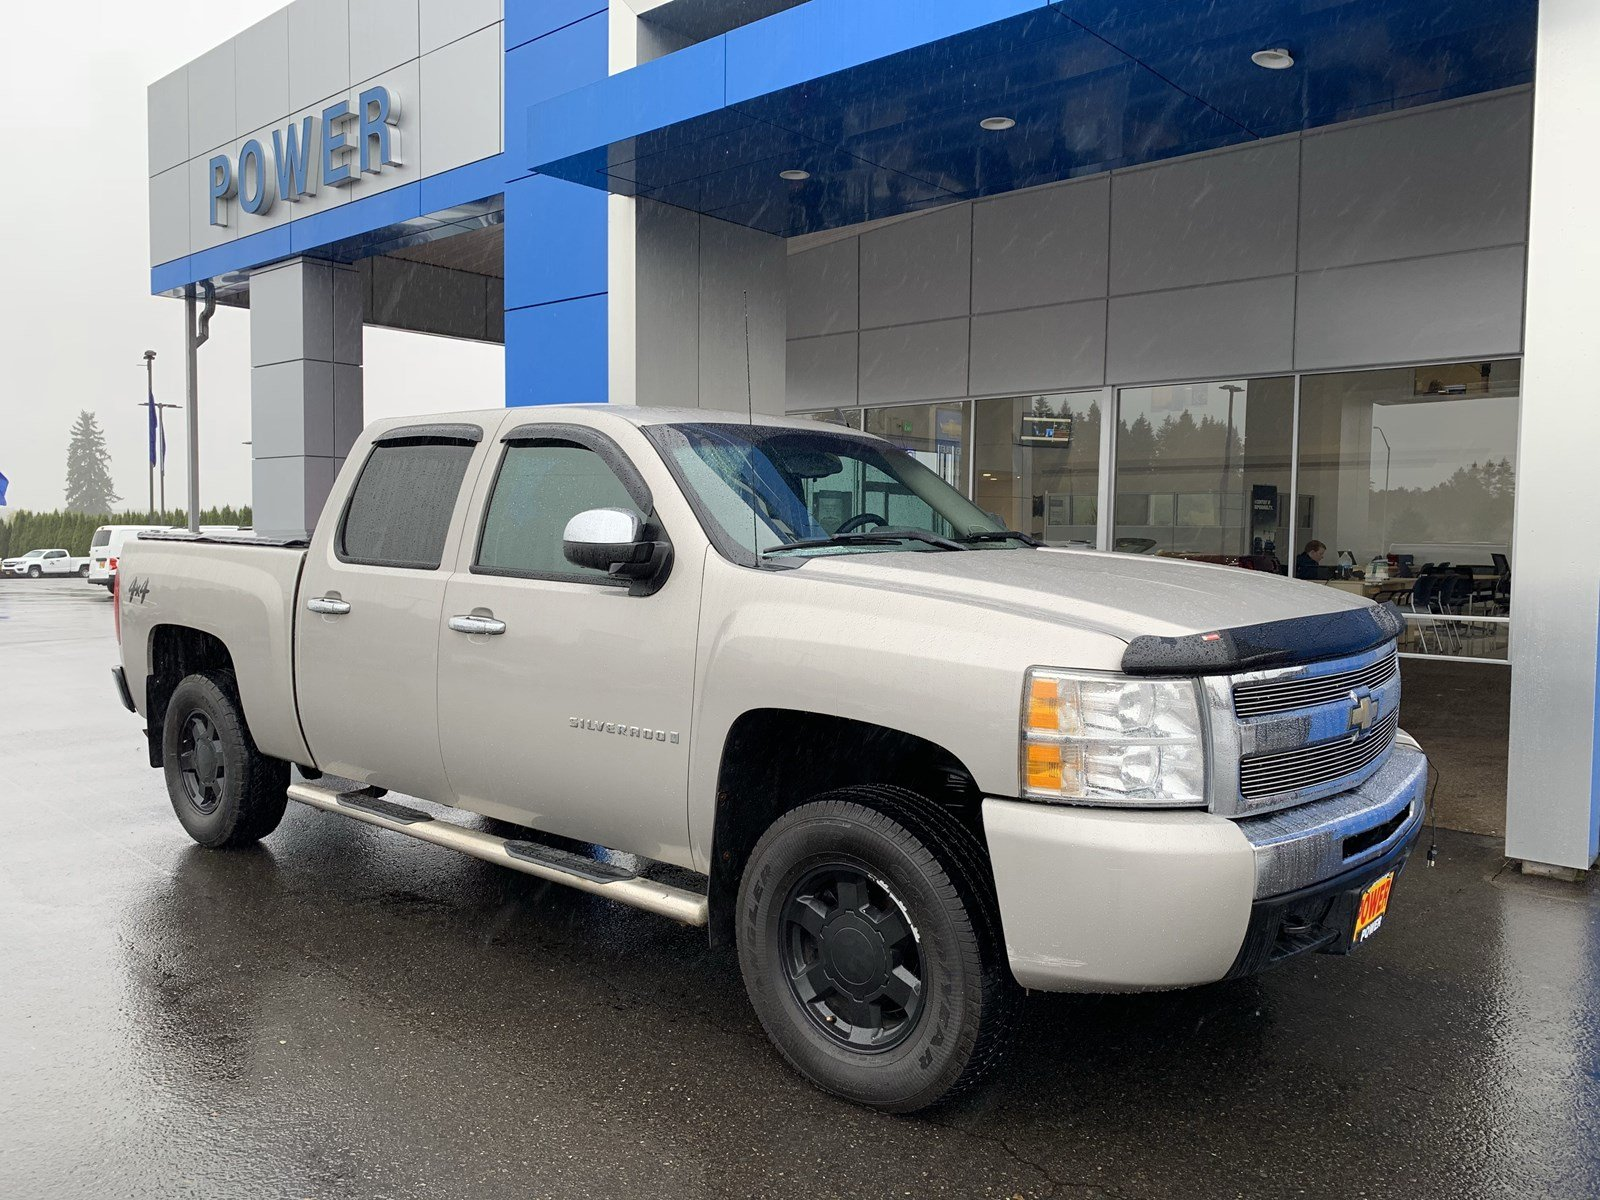 Pre Owned 2009 Chevrolet Silverado 1500 Crew Cab Pickup in Salem